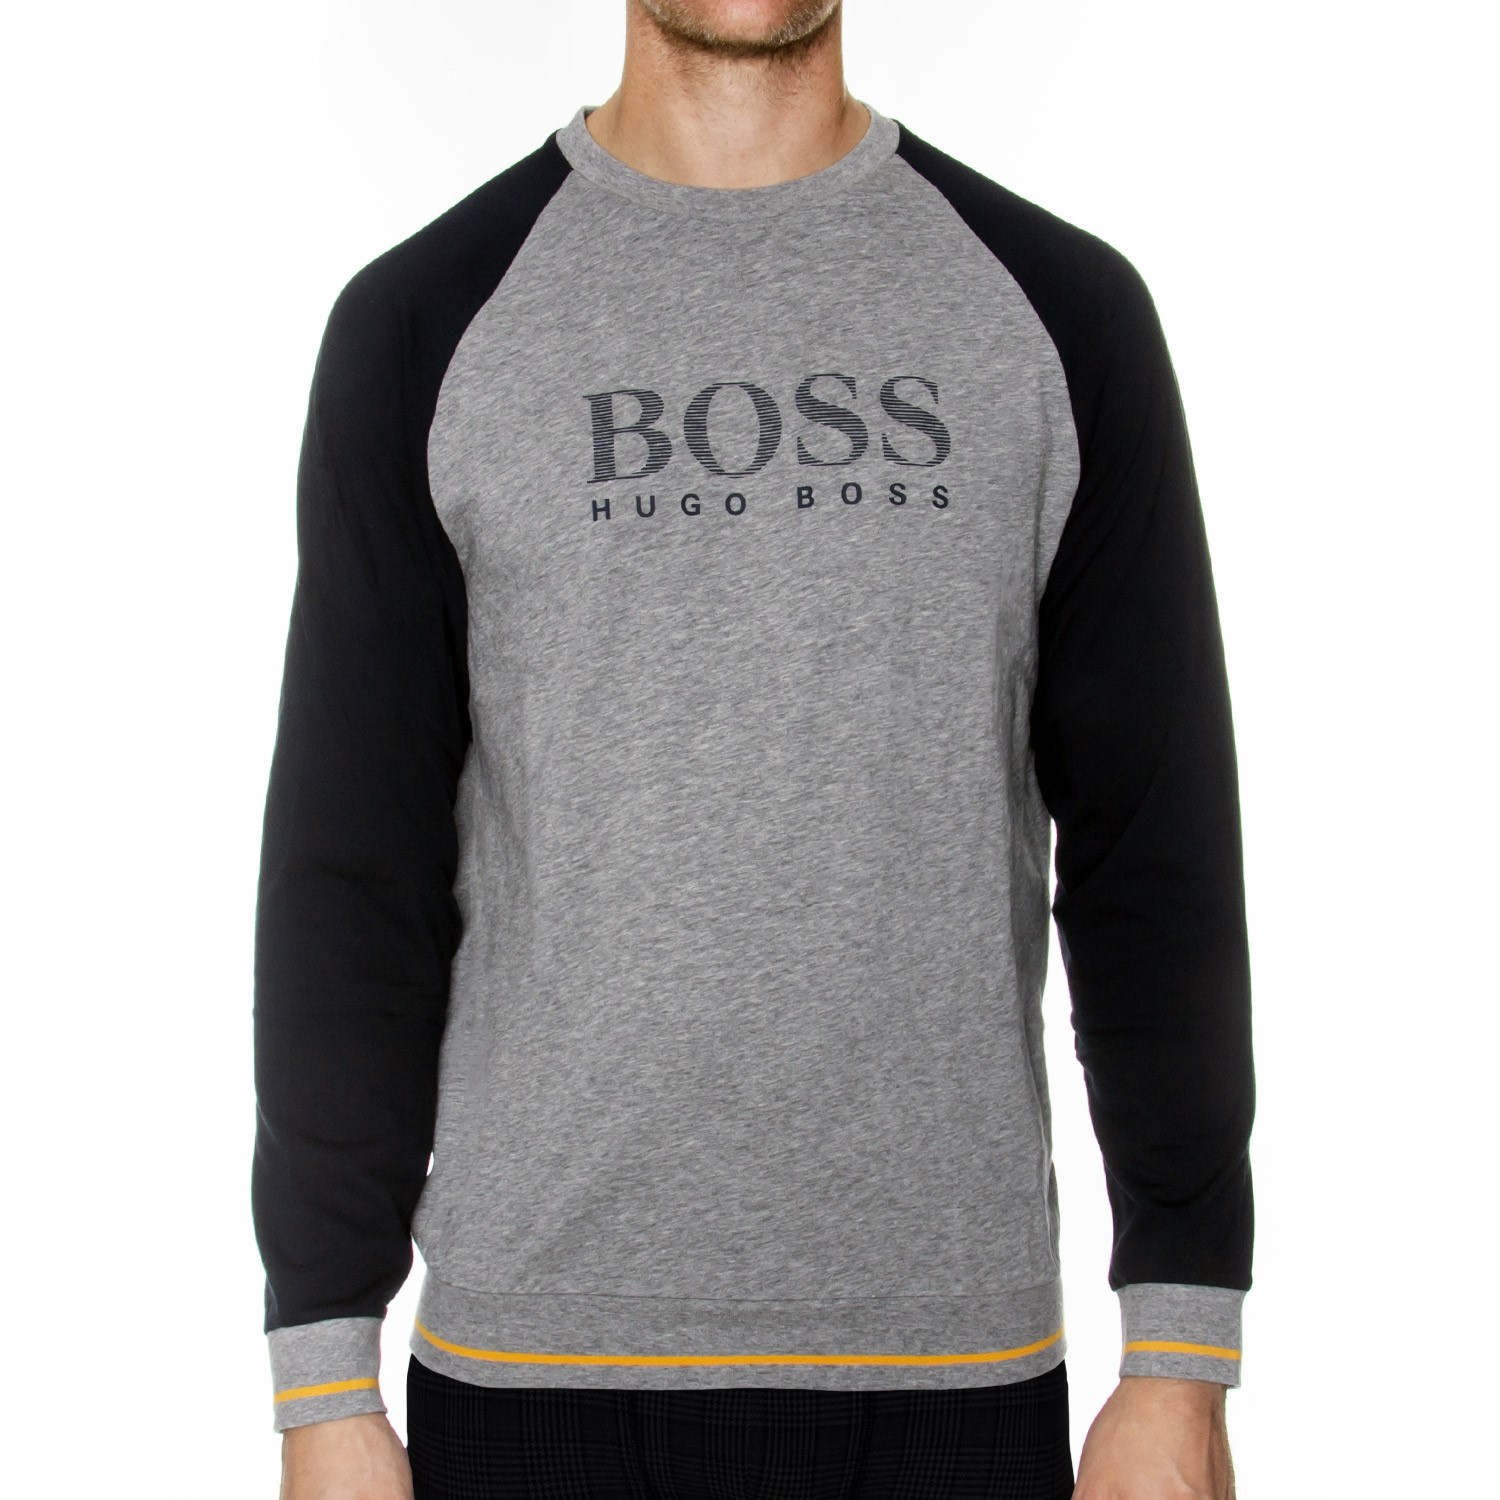 f6ca91413 Hugo Boss Authentic Sweatshirt - Sweaters - Clothing - Timarco.eu